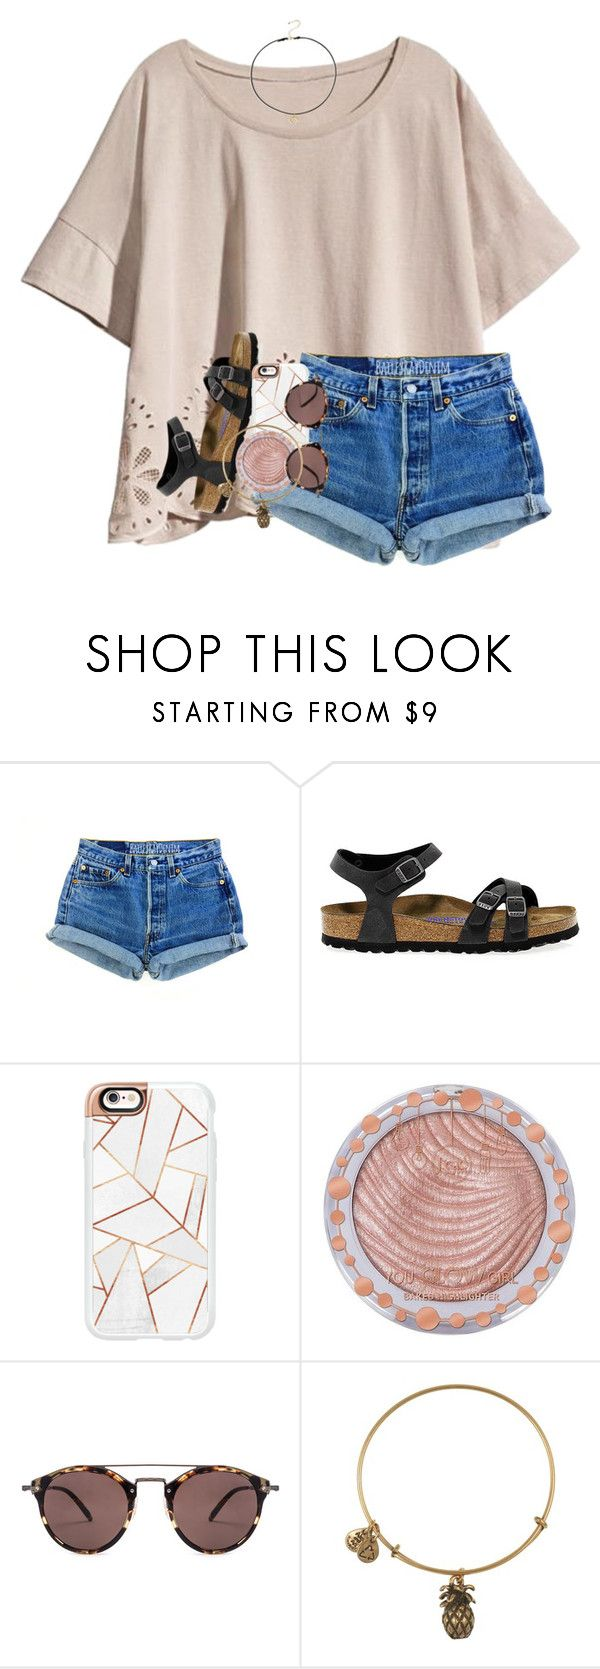 """""""must be love on the brain"""" by madiweeksss ❤ liked on Polyvore featuring H&M, Birkenstock, Casetify, Charlotte Russe, Oliver Peoples, Alex and Ani and Dogeared"""